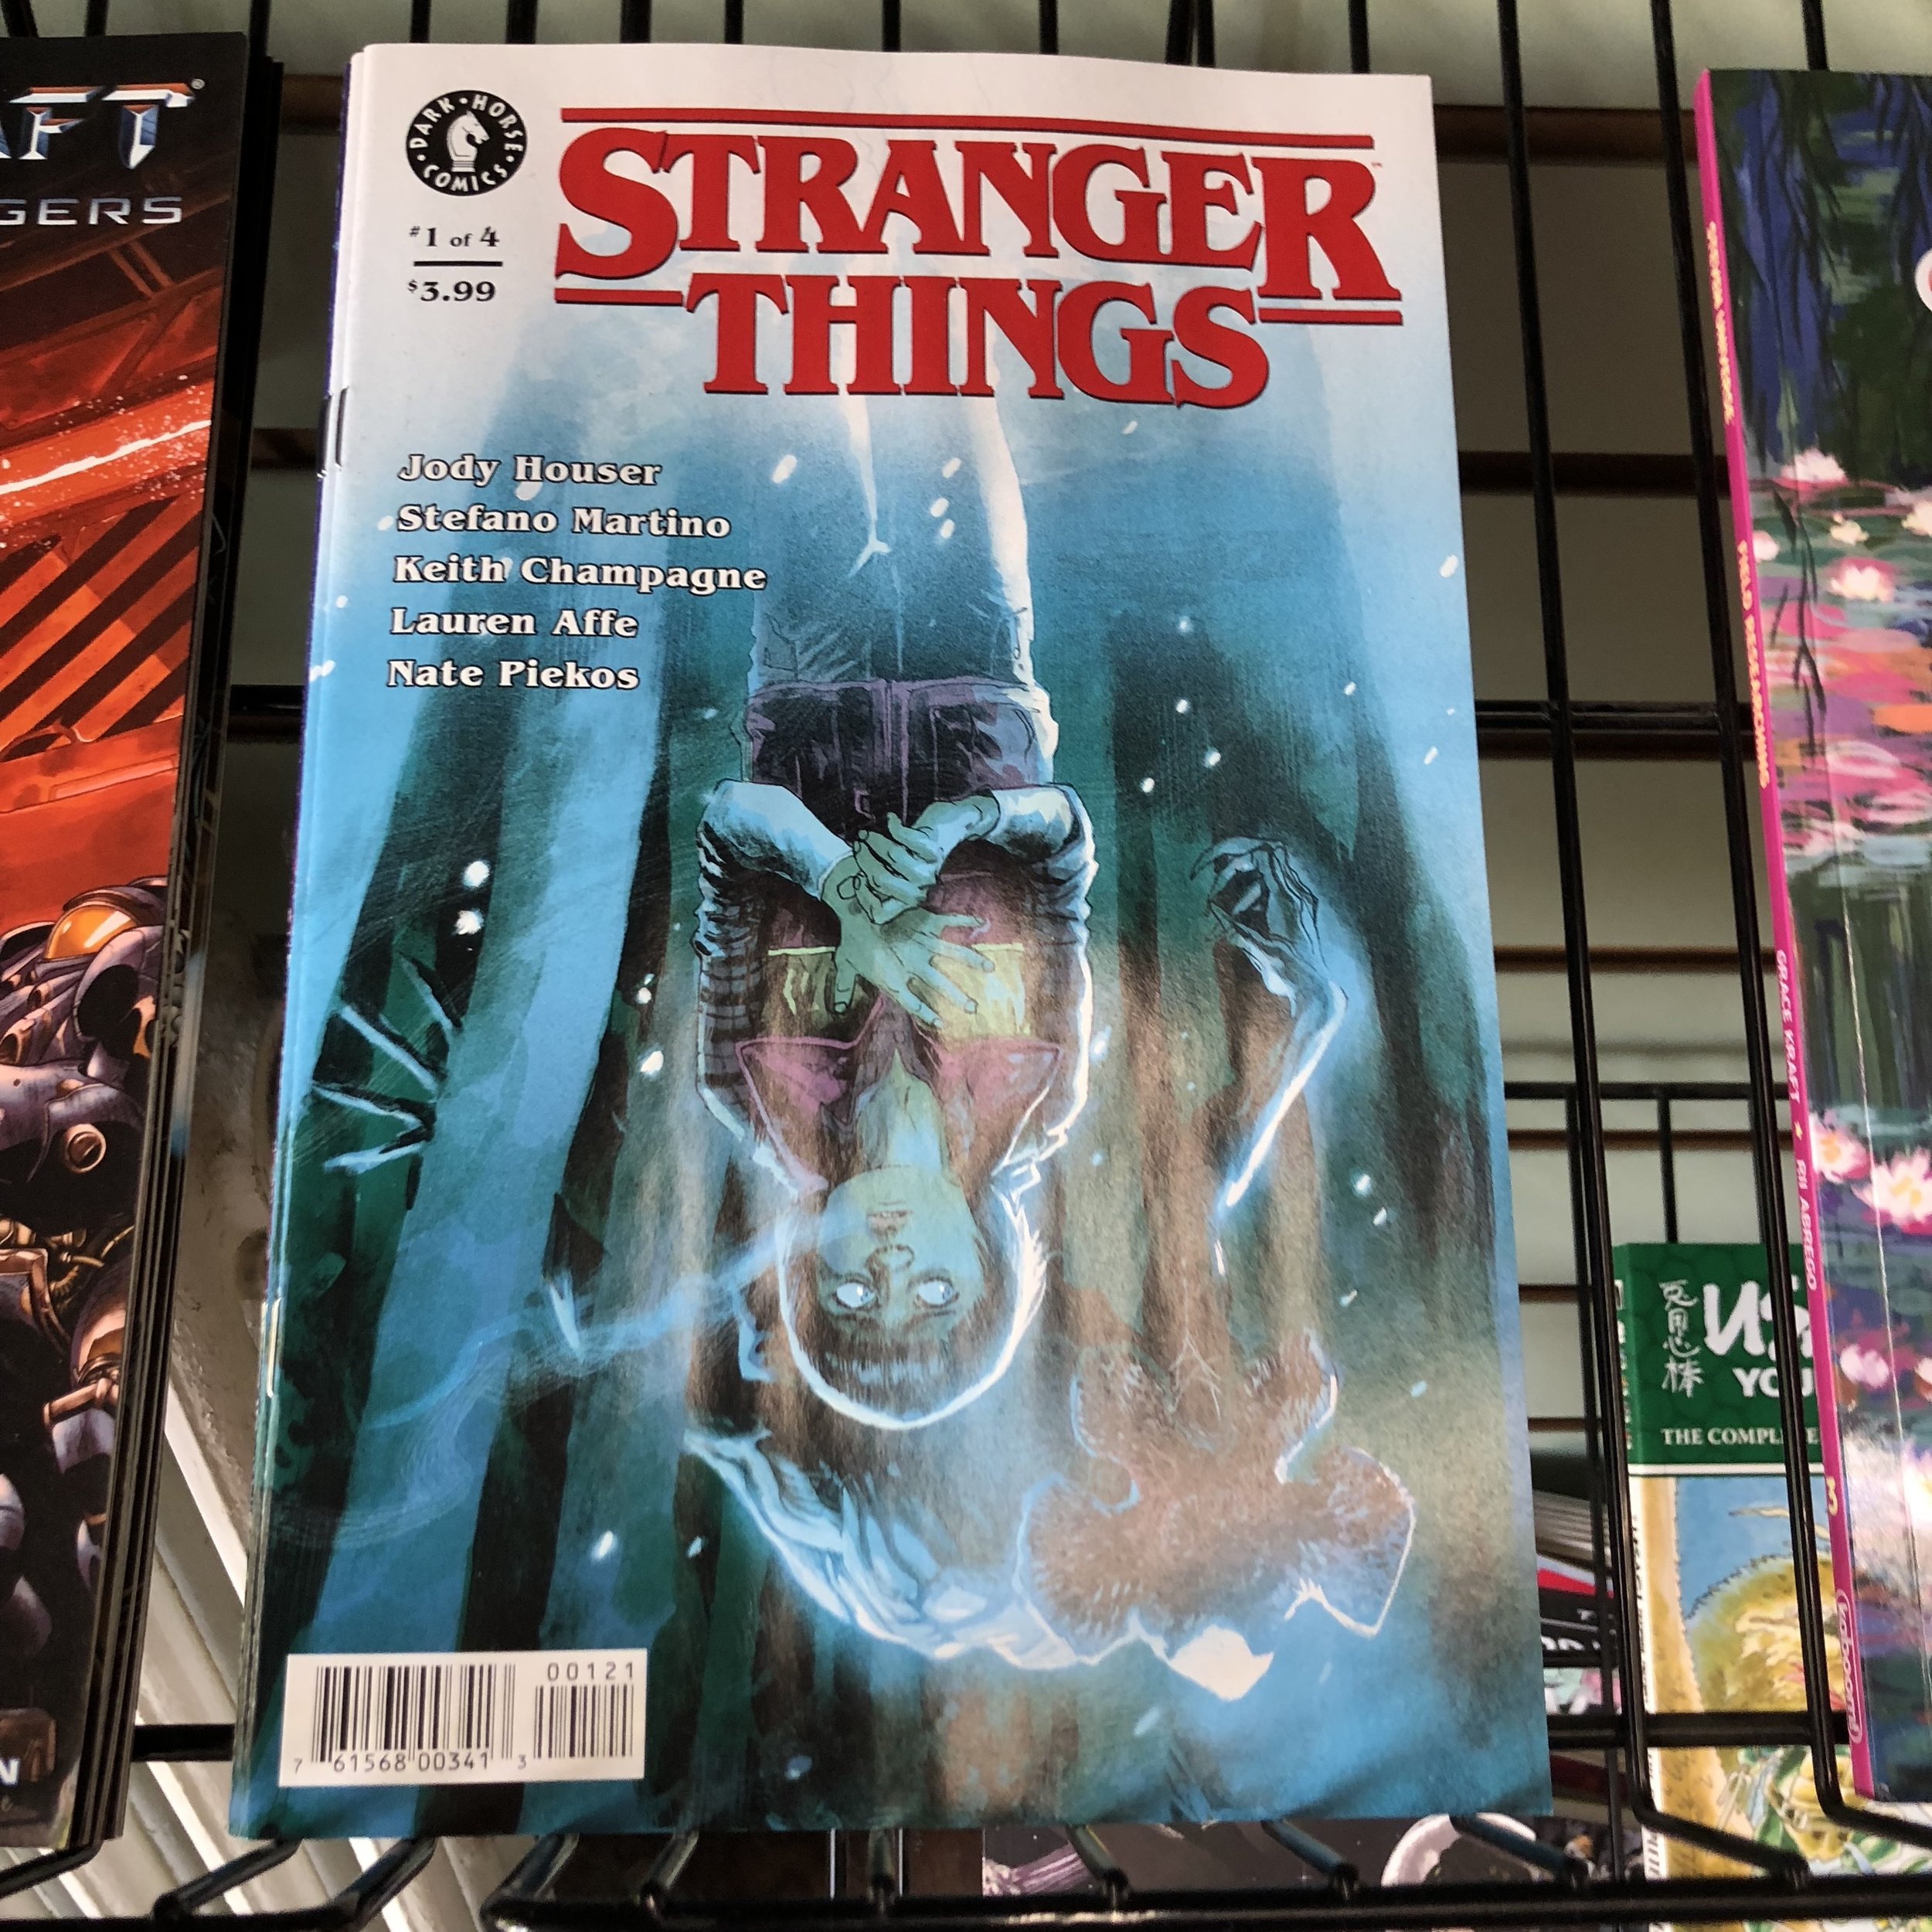 STRANGER THINGS #1 - Find out what happened to Will in the UPSIDE DOWN!